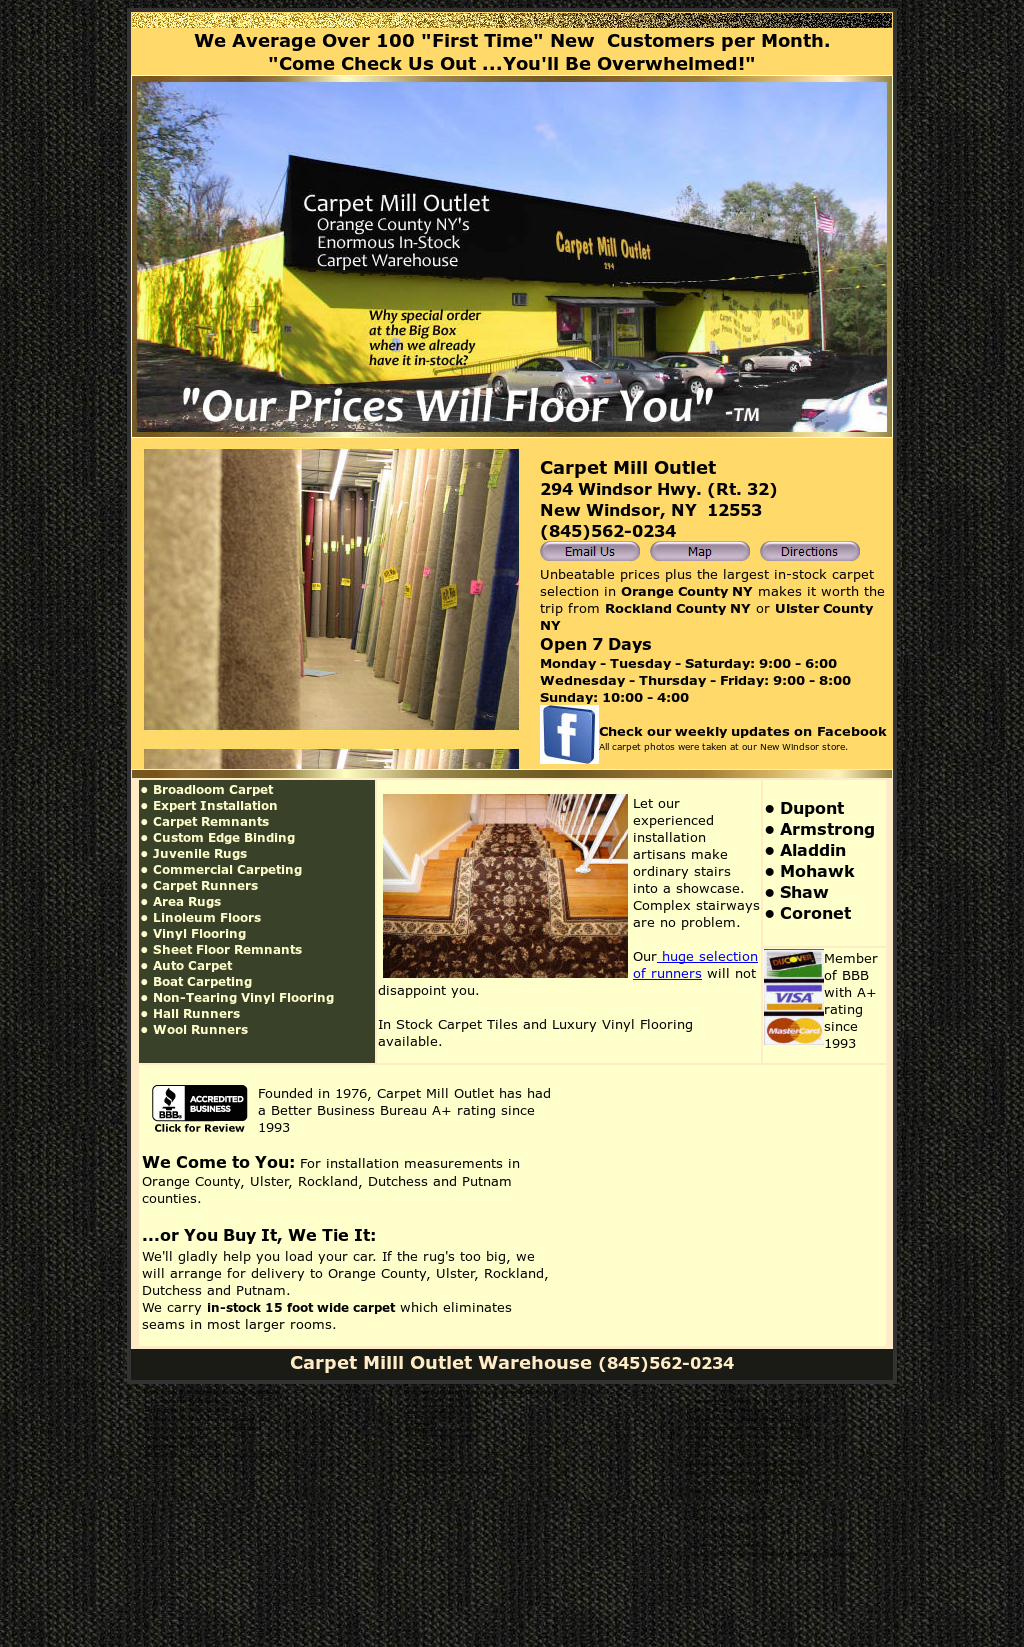 Carpet Mill Outlet New Windsor Ny Competitors Revenue And Employees Owler Company Profile